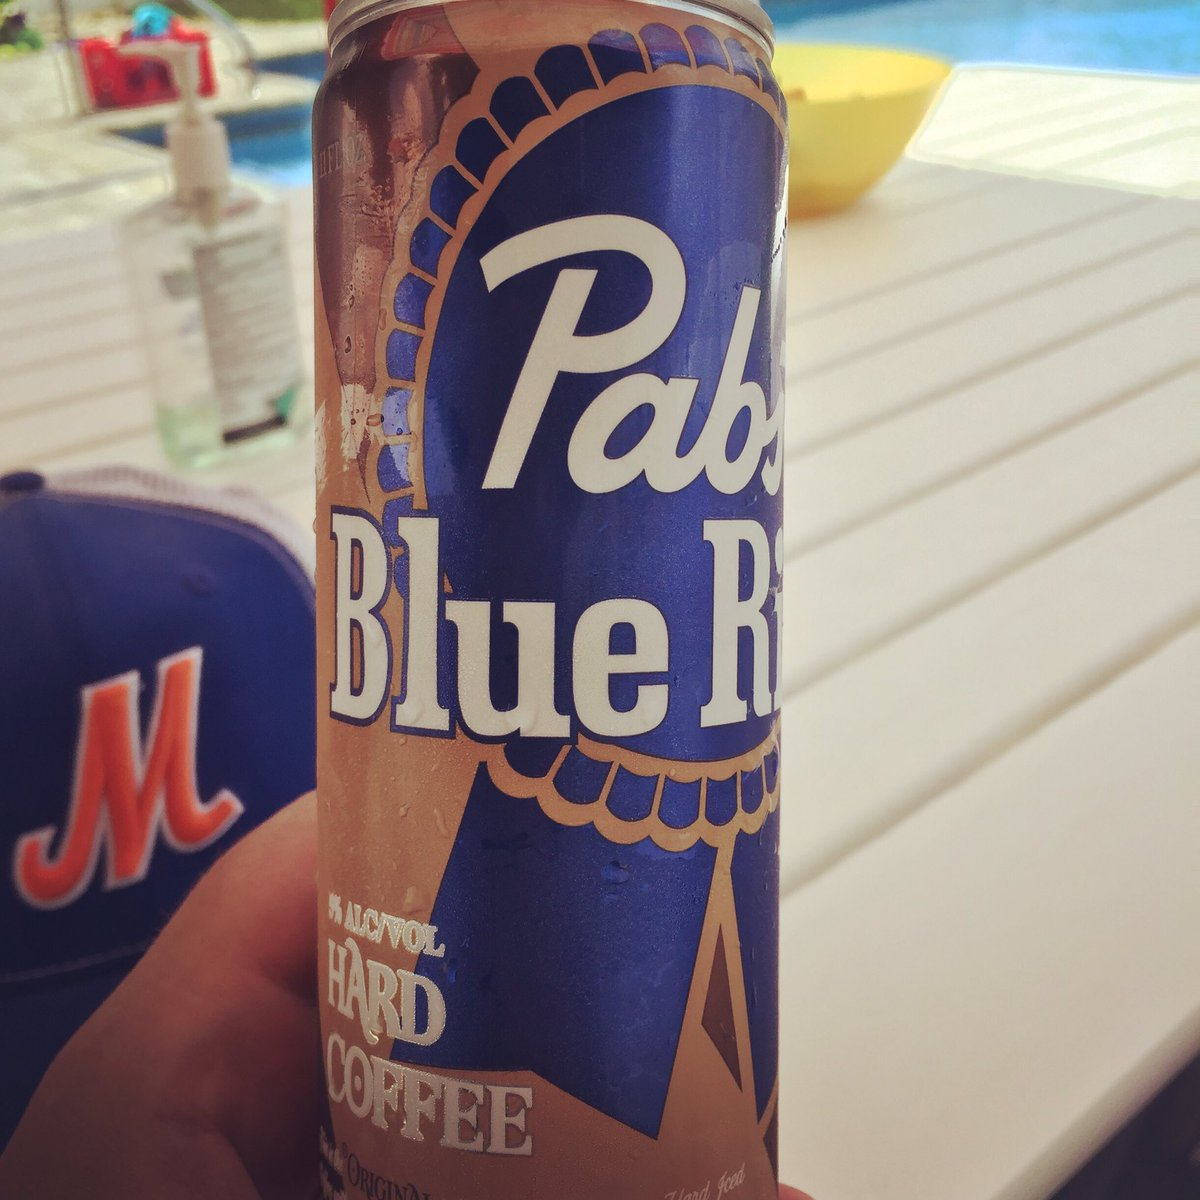 Hear me out. These are delicious. Buy a 4 pack. You won't be disappointed! #pbr #hardcoffee #pabstblueribbon #pabsthardcoffee #yummy #getem #sorrynotsorry #whitegirlsevolving #summertime #weekends #goodtimespic.twitter.com/RD9aBdG6gL